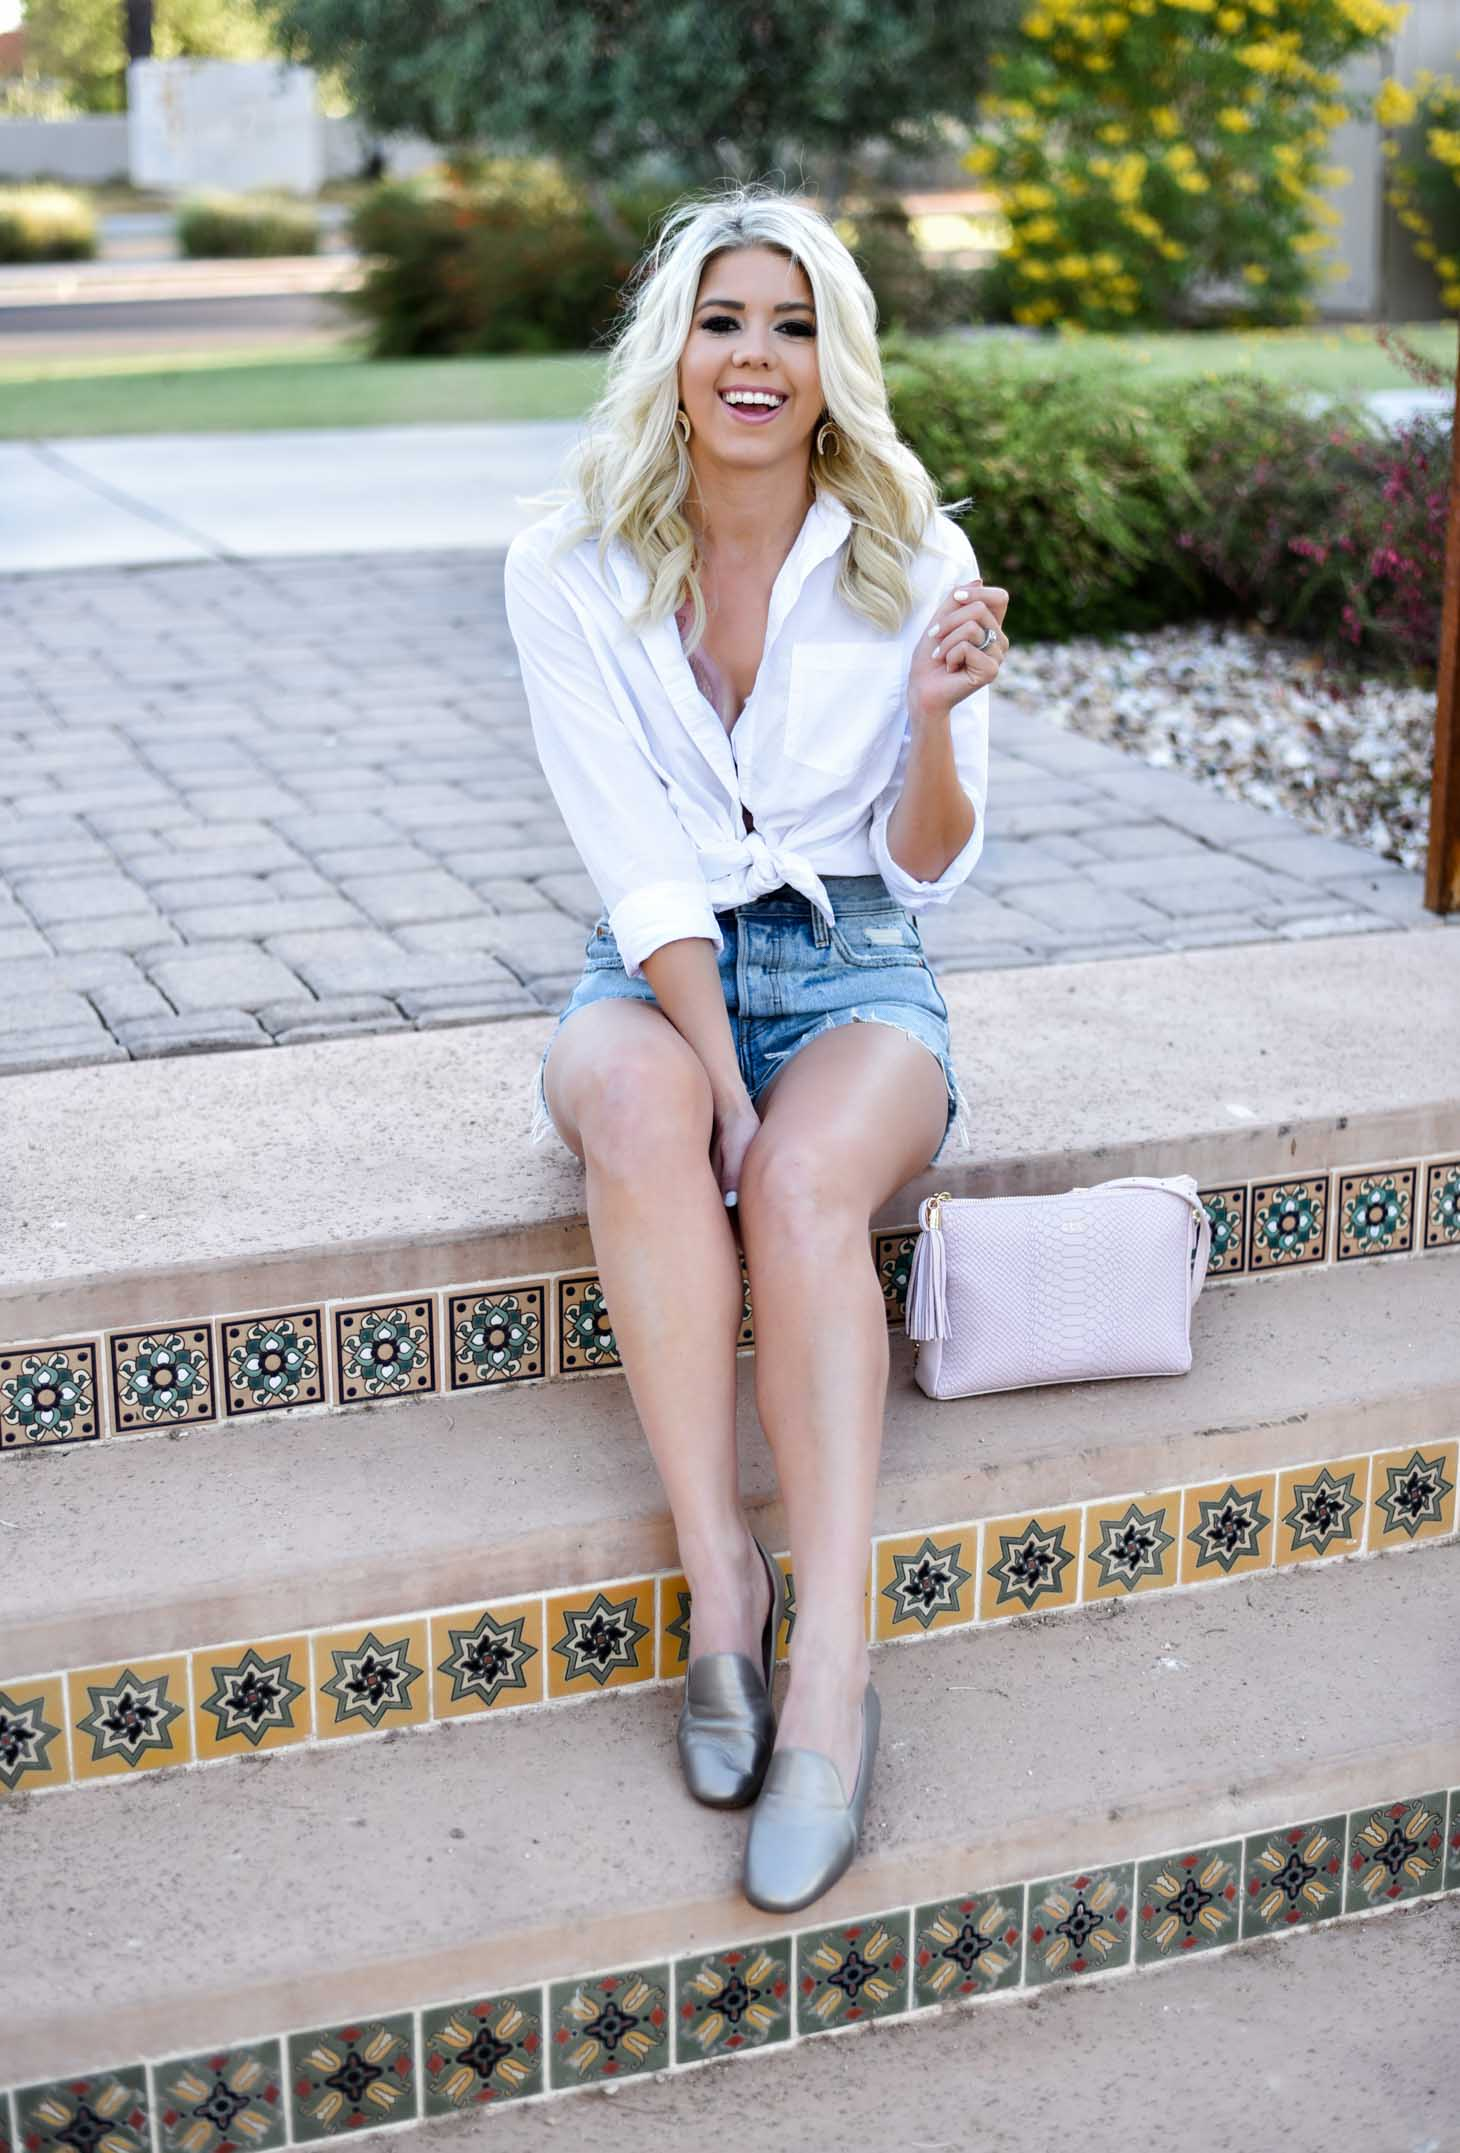 Erin Elizabeth of Wink and a Twirl shares this summer style featuring the Emiline shoe by Naturalizer